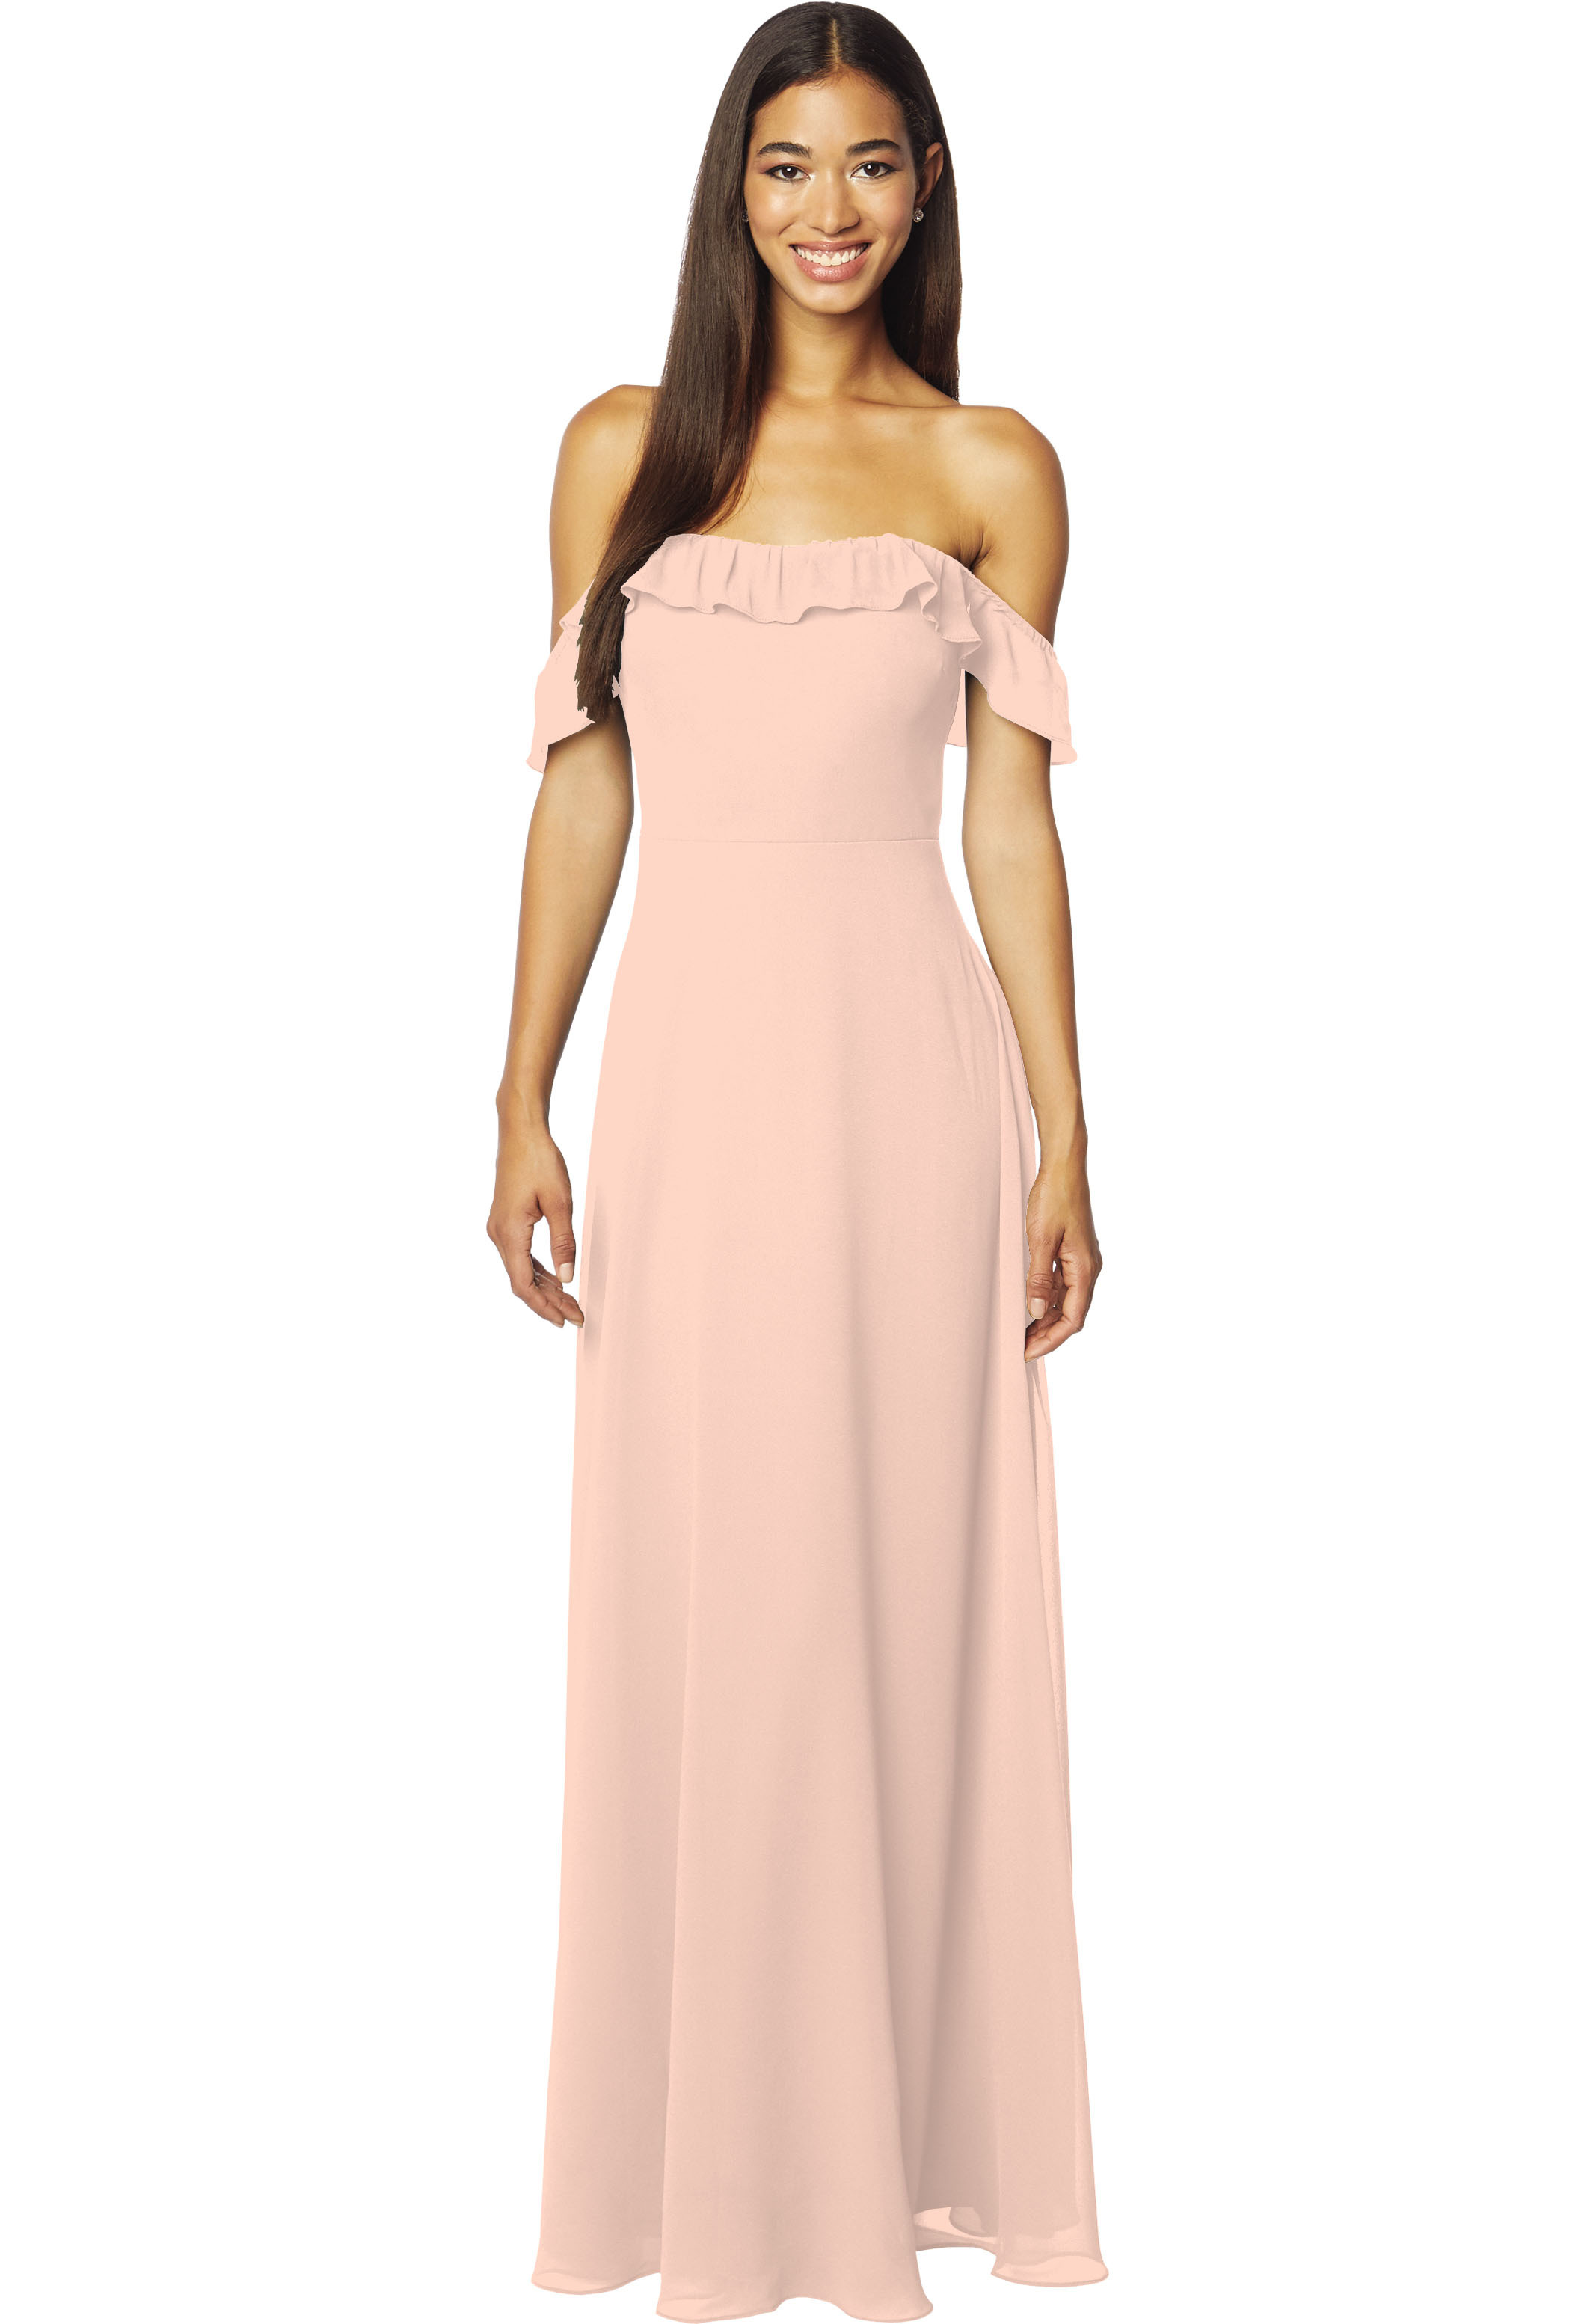 Bill Levkoff PETAL PINK Chiffon Off The Shoulder A-line gown, $178.00 Front